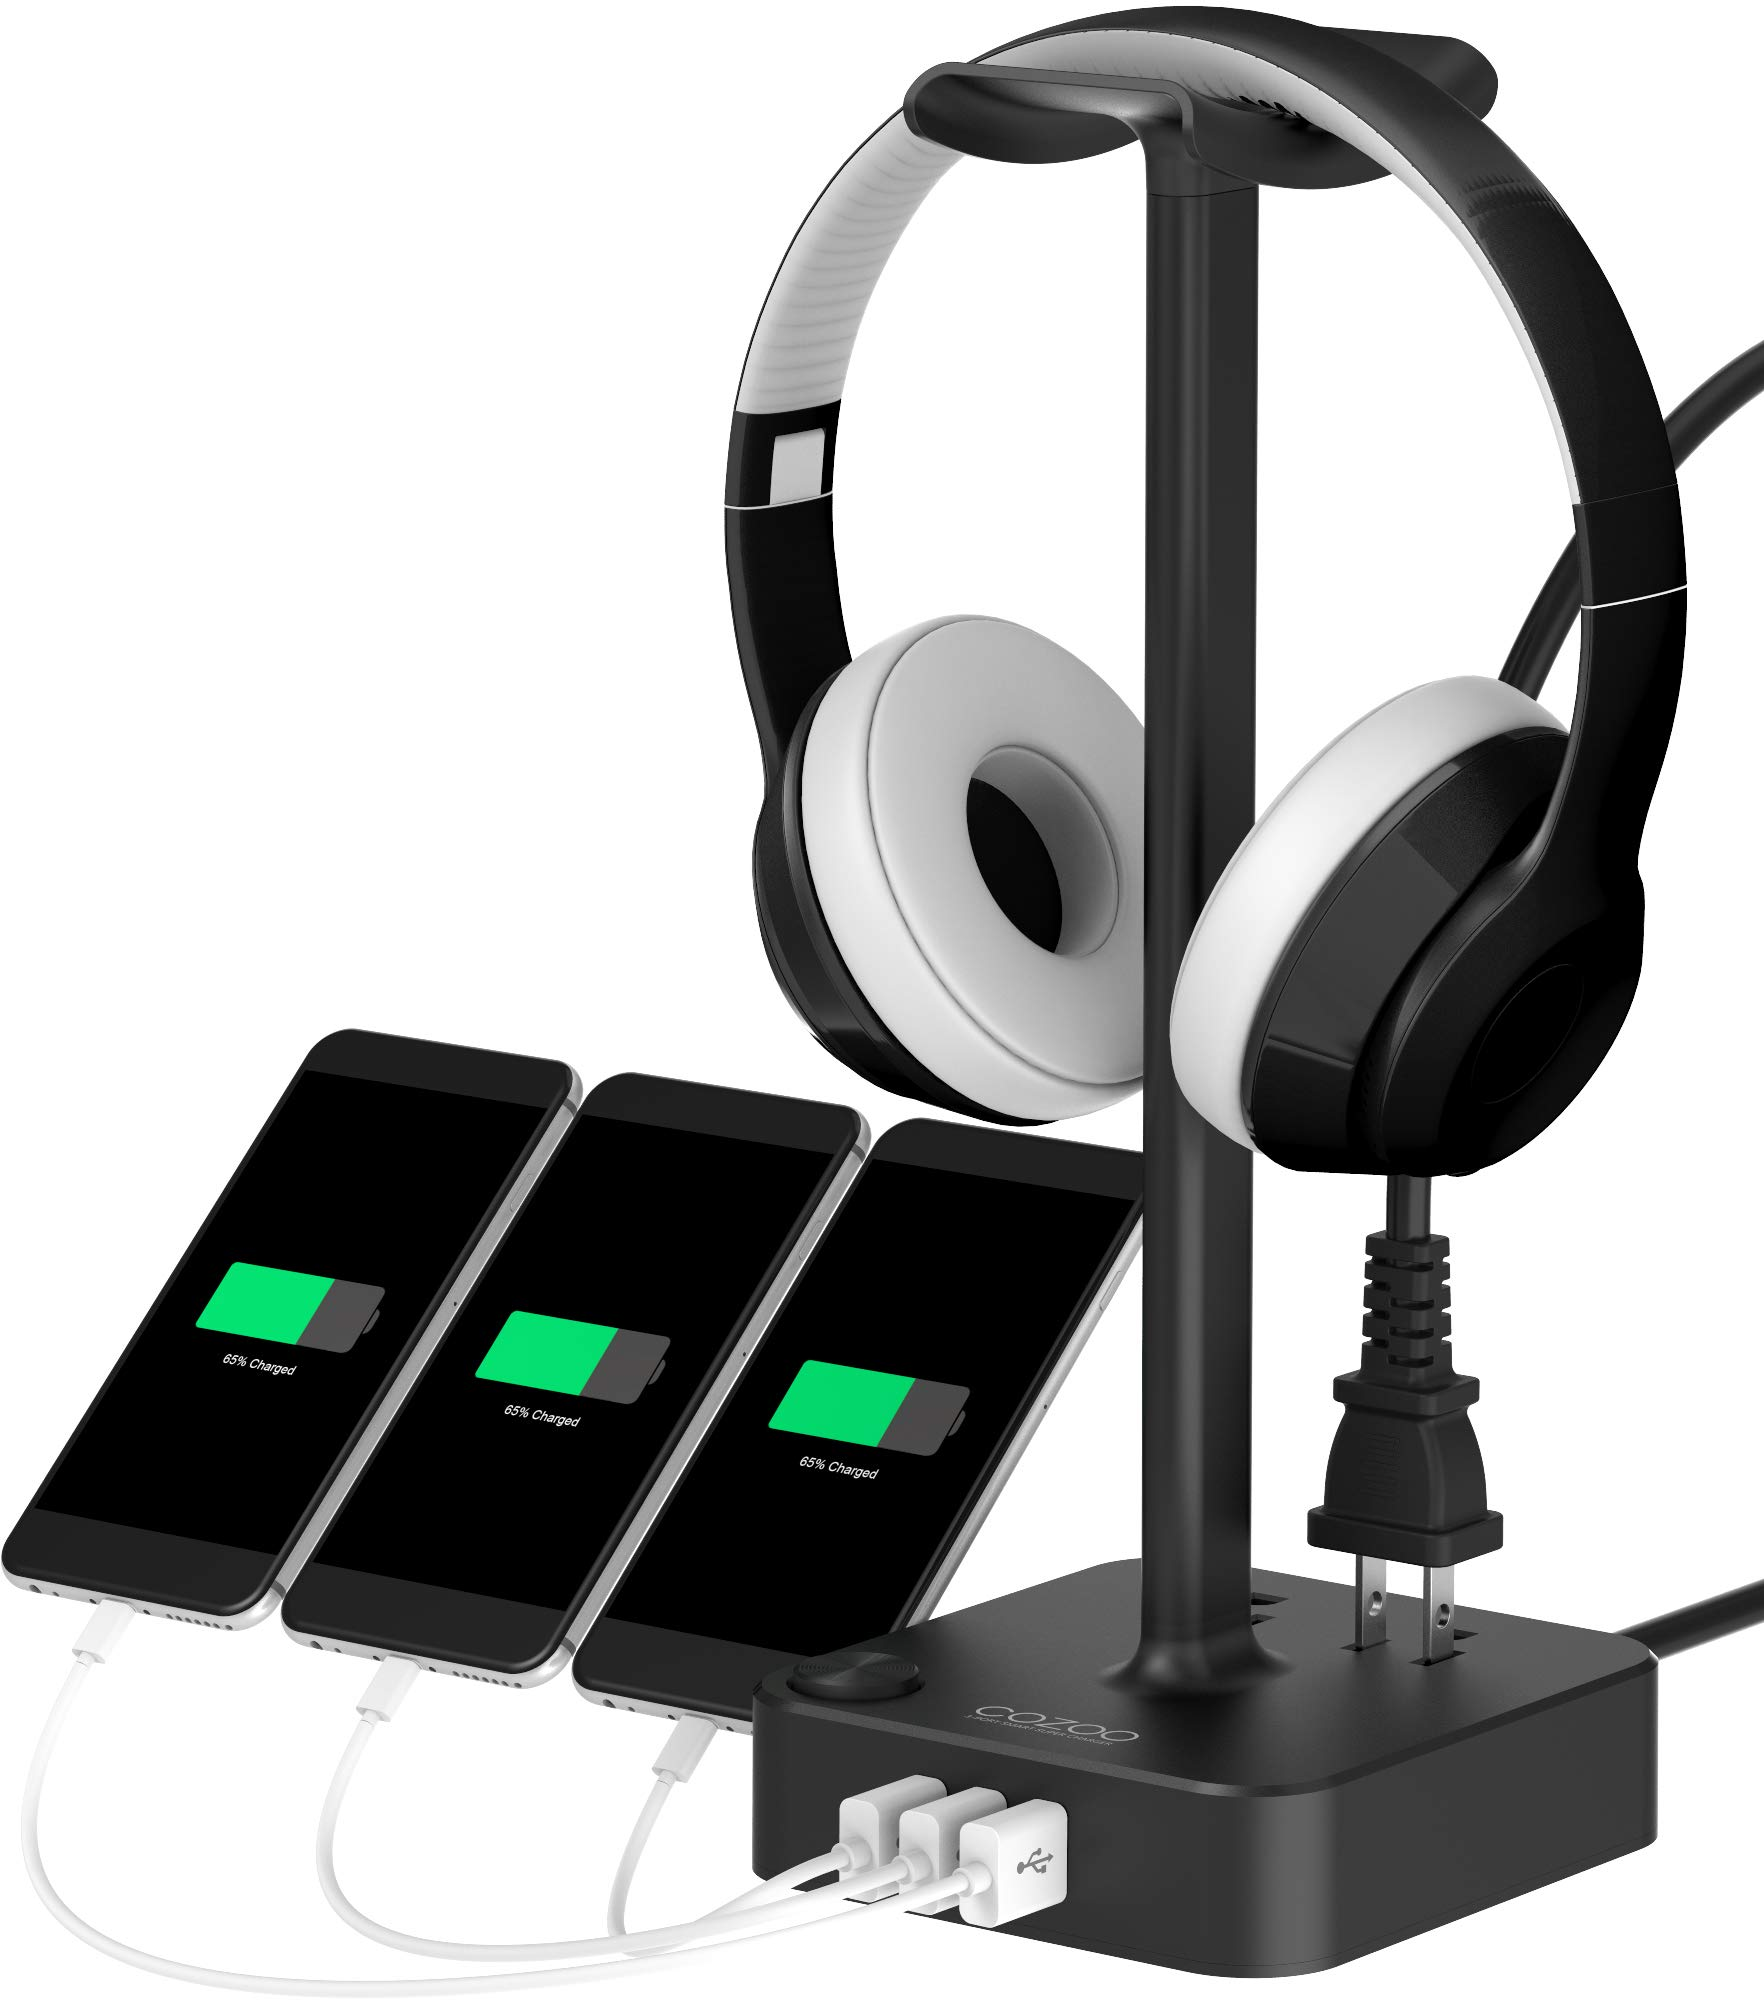 Headphone Stand with USB Charger COZOO Desktop Gaming Headset Holder Hanger with 3 USB Charger and 2 Outlets - Suitable for Gaming, DJ, Wireless Earphone Display (Black) by cozoo